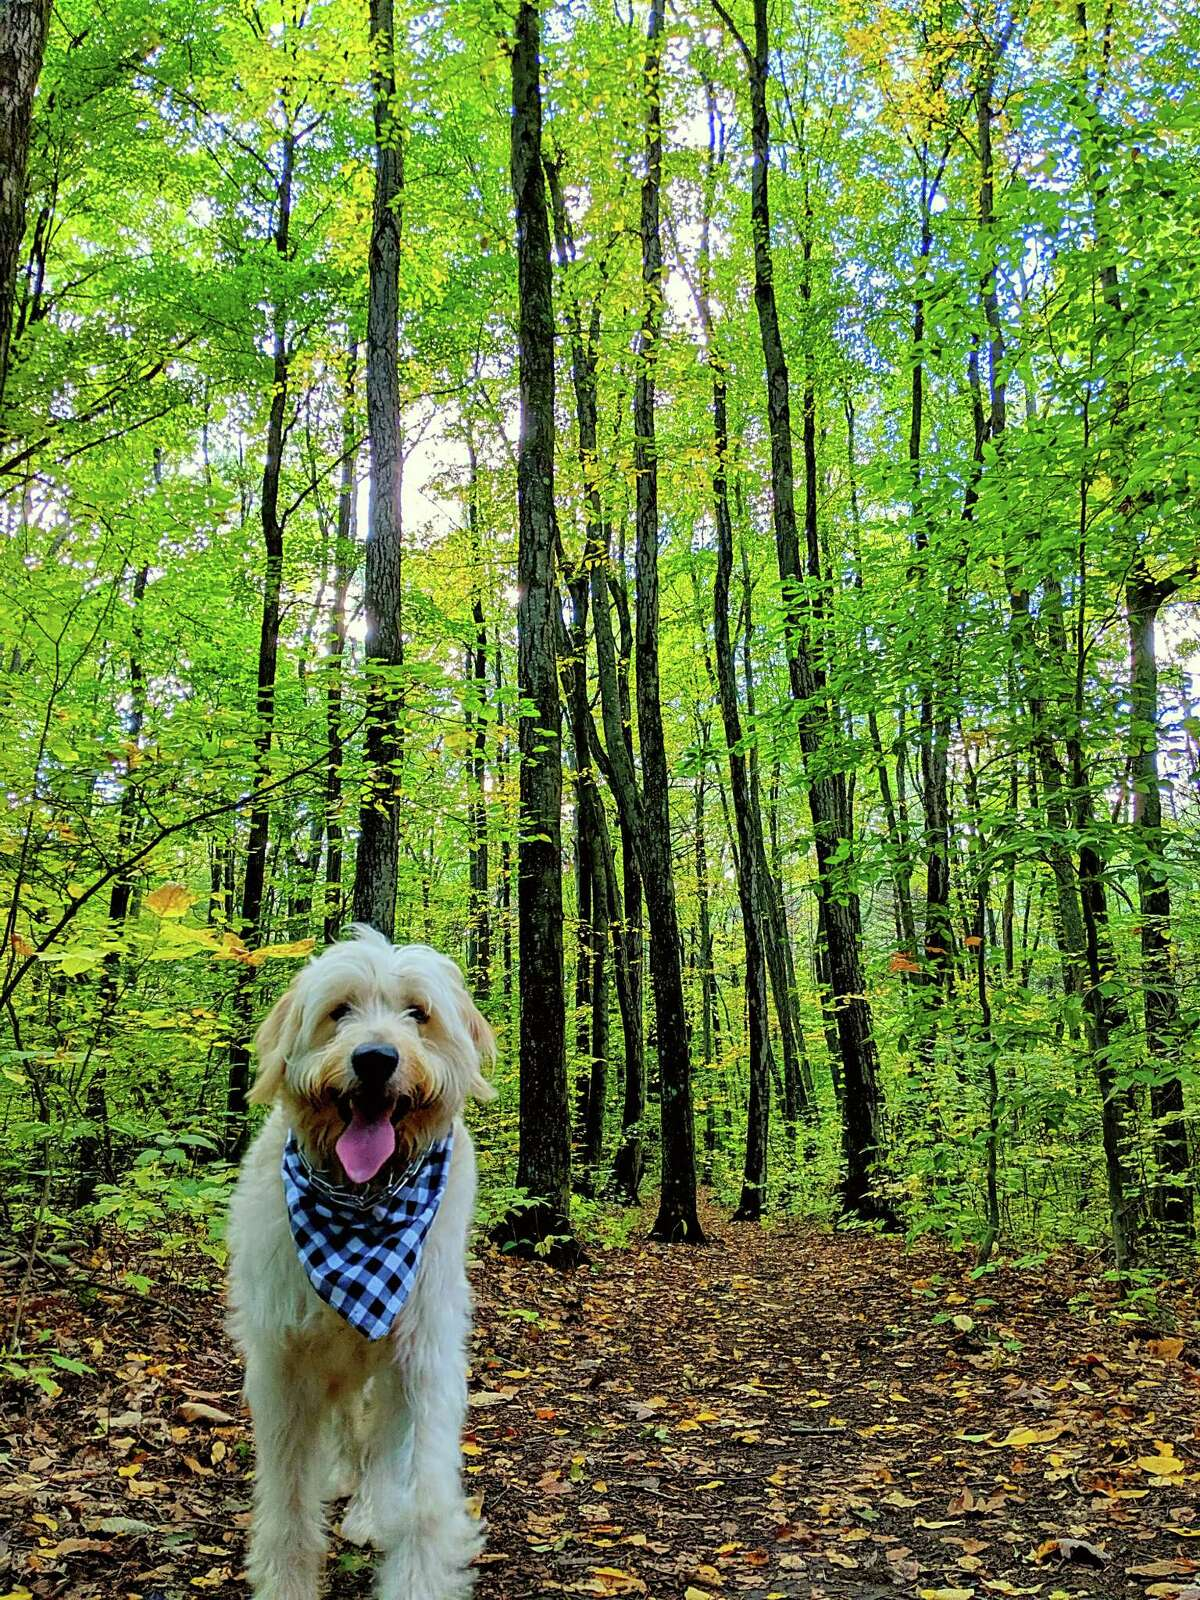 In September the Boswell family took a hike on the trails at Clifton Park's Kinns Road Park, a trip that included their one-year-old golden doodle Murphy and their daughter Chloe. (Robert Boswell Jr.)